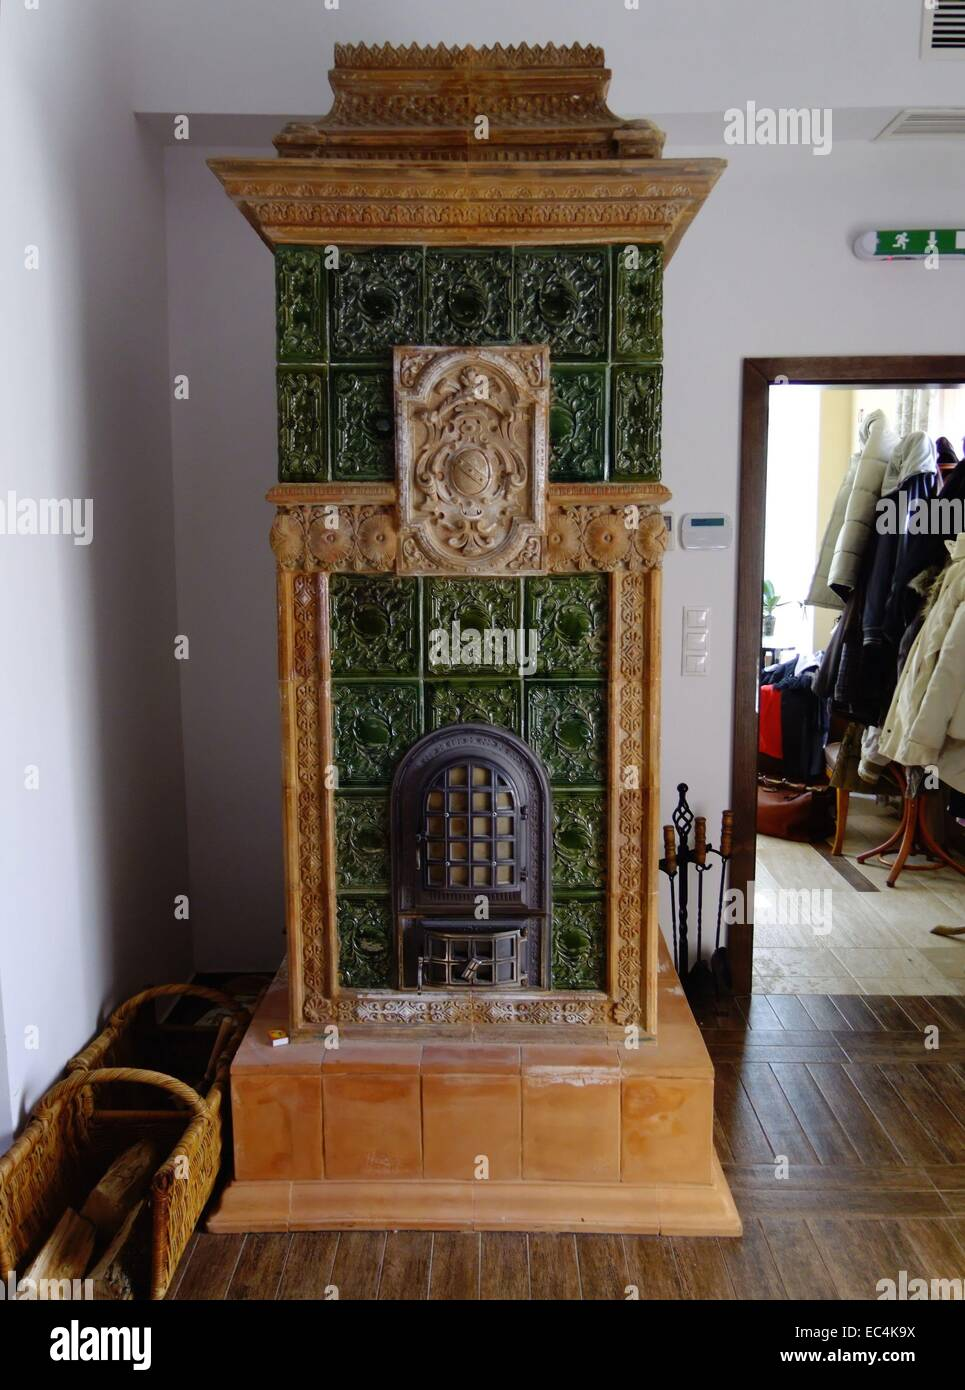 Old tiled stove in the Schlosshotel of Pronay Hungary - Stock Image